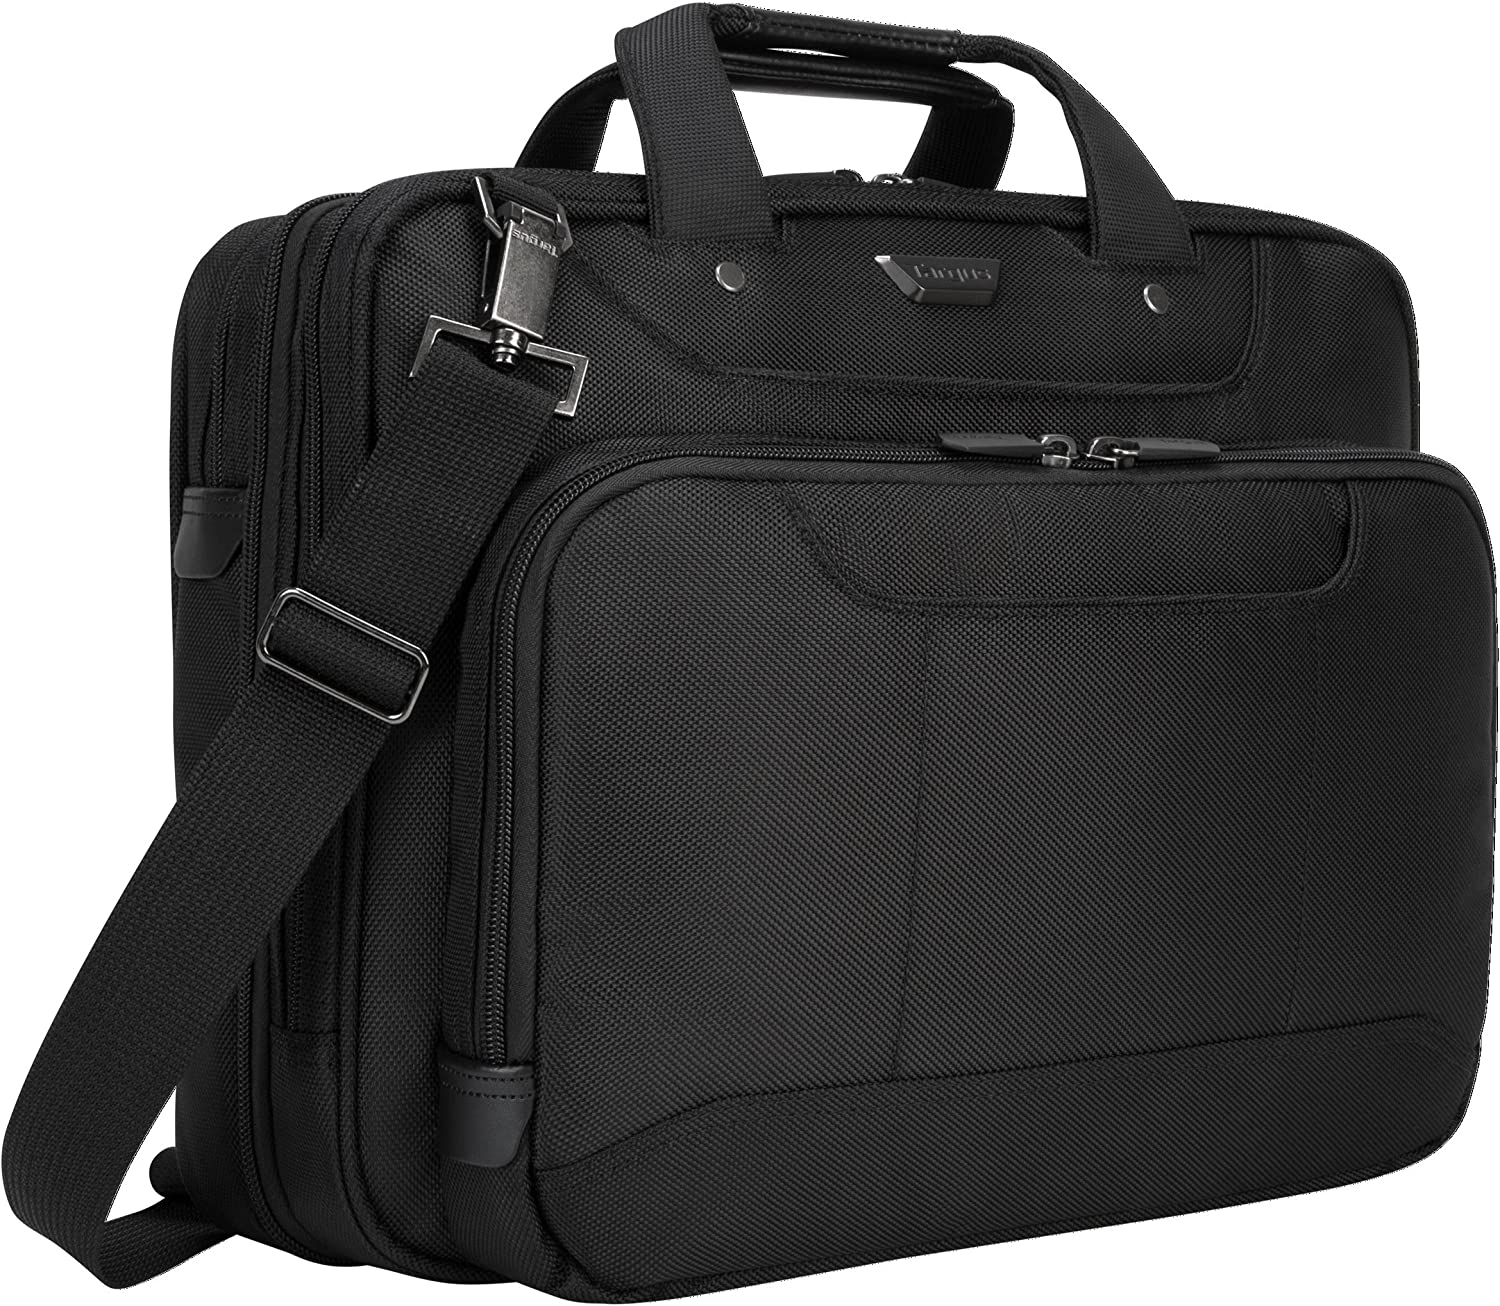 Targus Corporate Traveler Laptop Briefcase for Slim Commute, TSA Security Checkpoint Friendly, File Section and Compartment Organizer, SafePort Protection fits 14-Inch Laptop, Black (CUCT02UA14S)